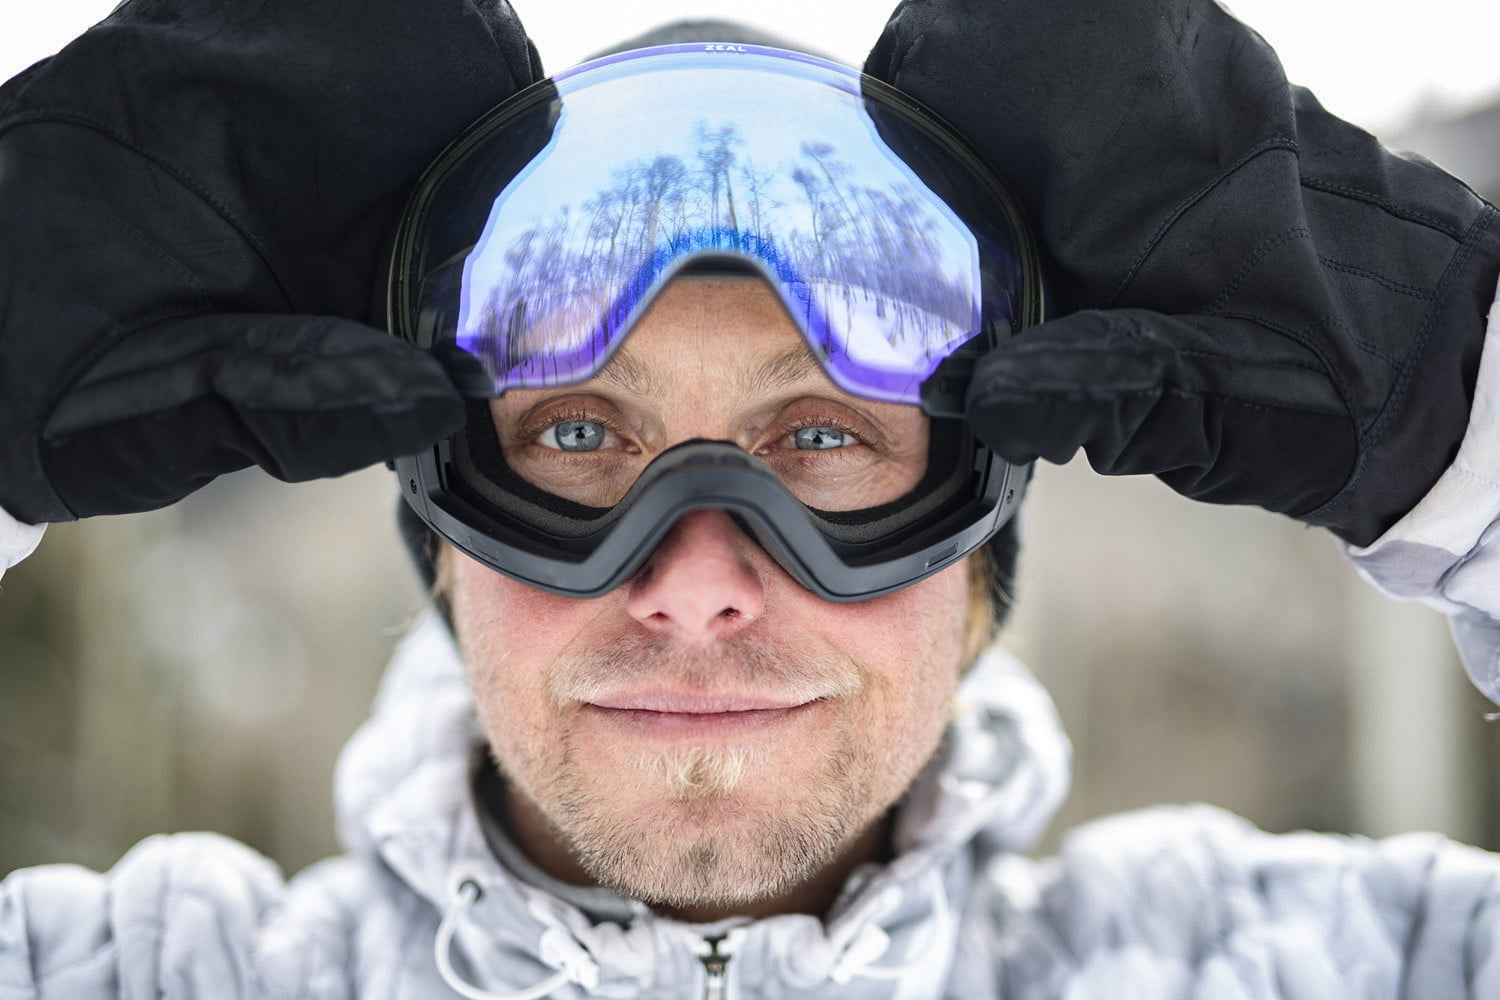 e6e606790064 The 10 Best Ski Goggles to Keep You Seeing Clearly on the Hill ...